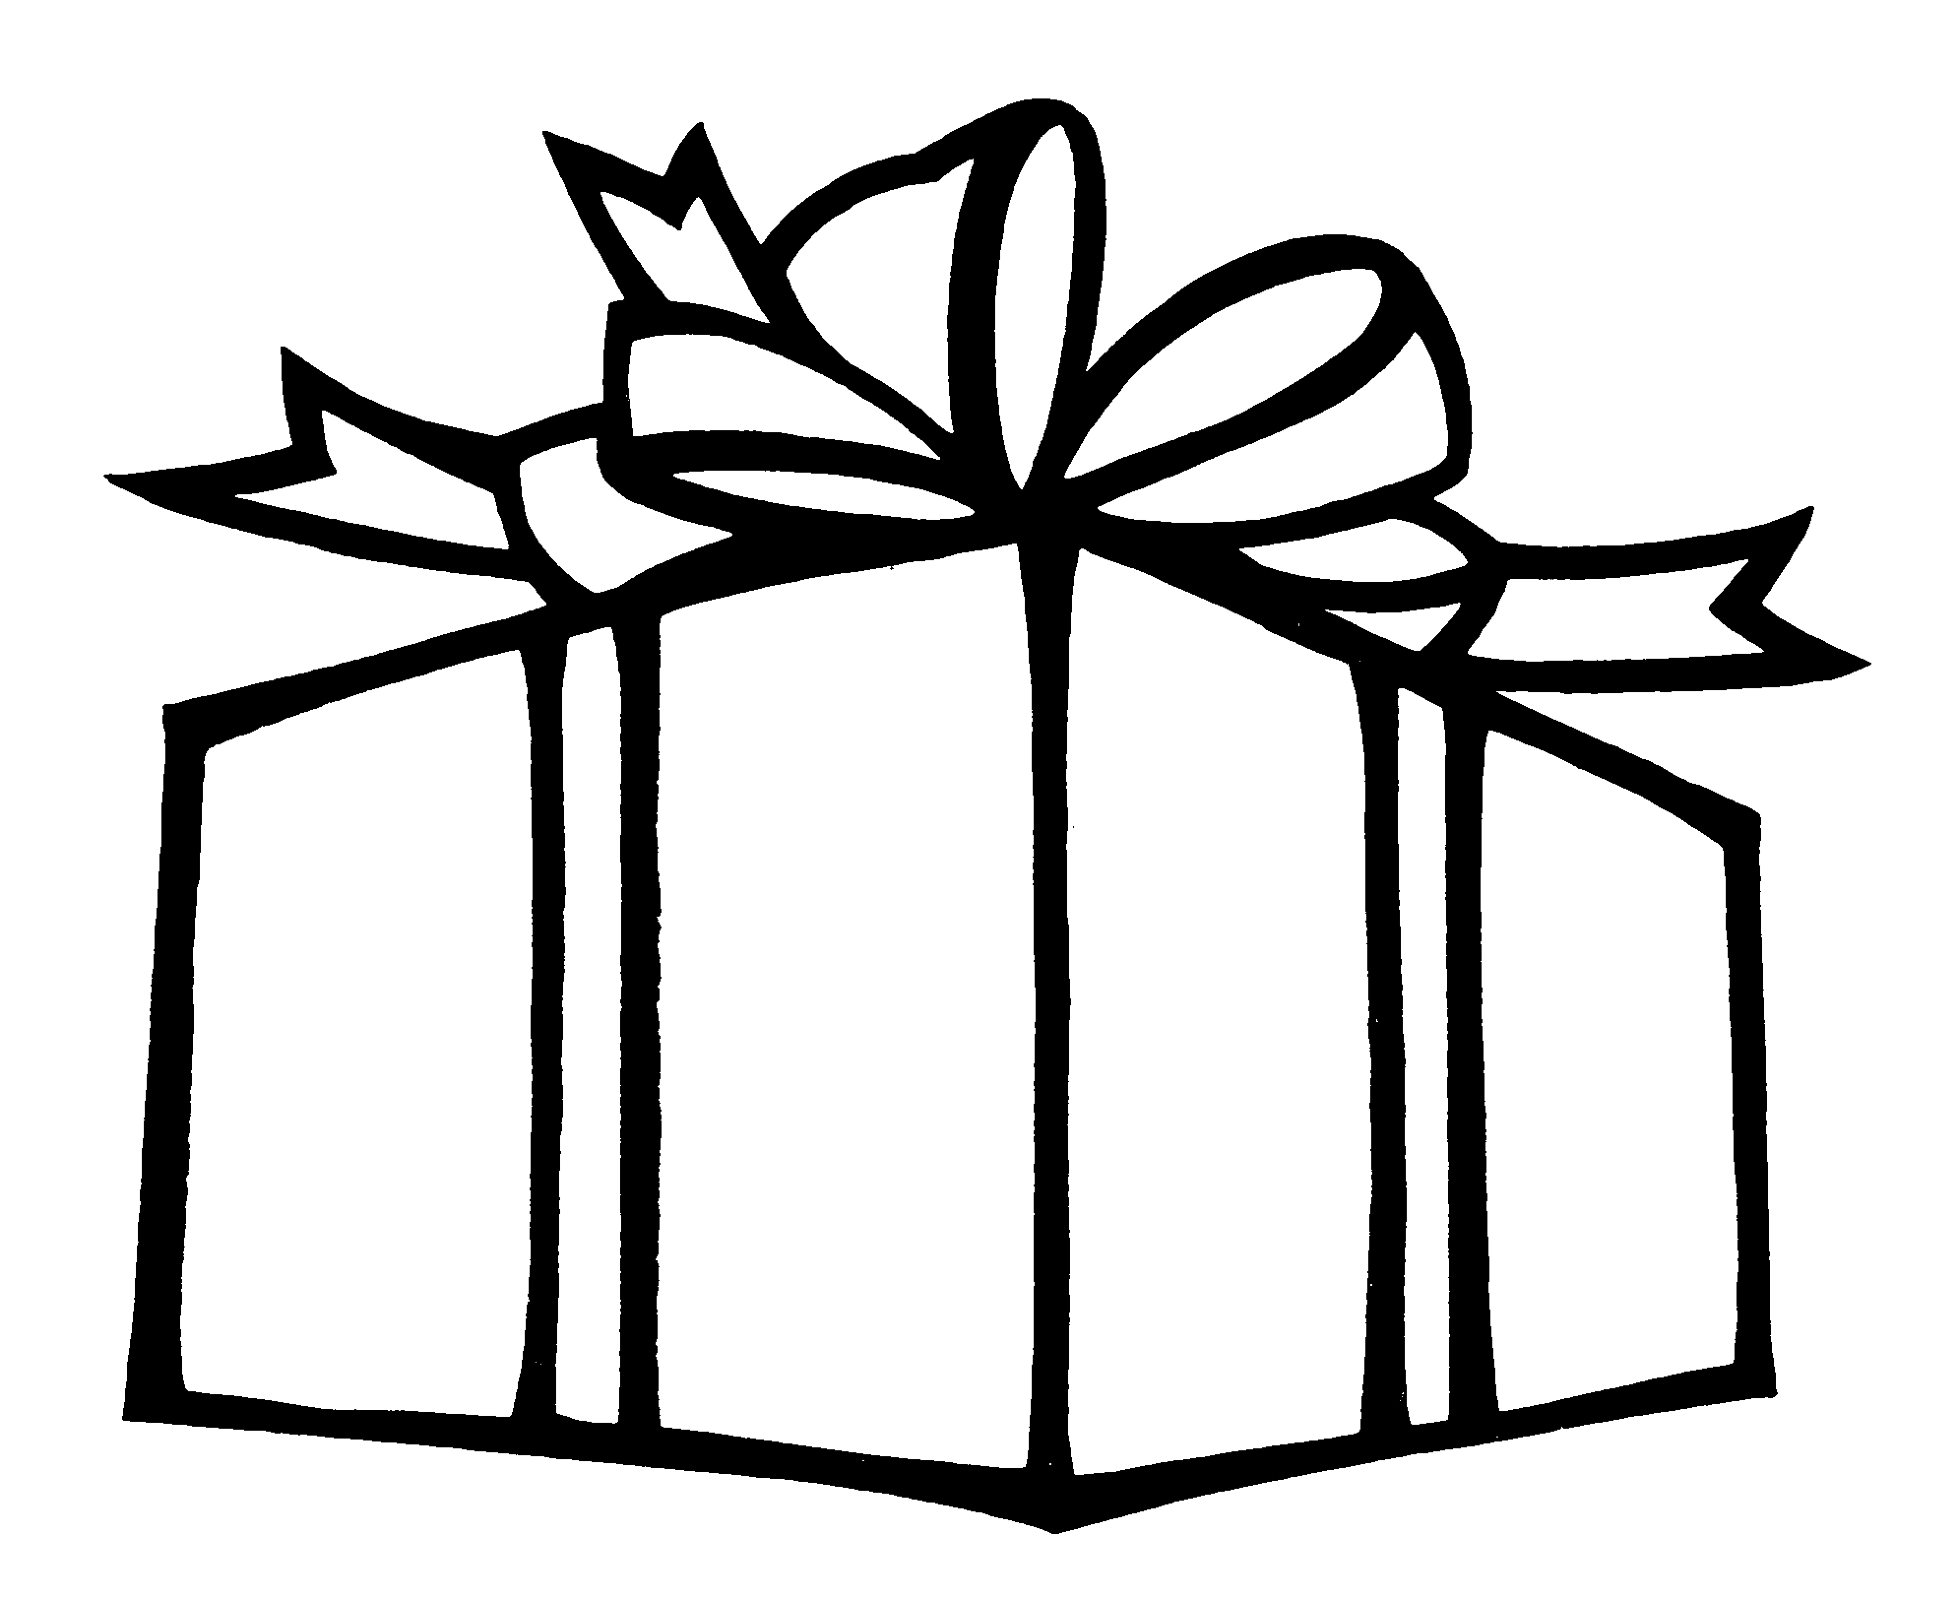 Lds christmas clipart 4 » Clipart Station.